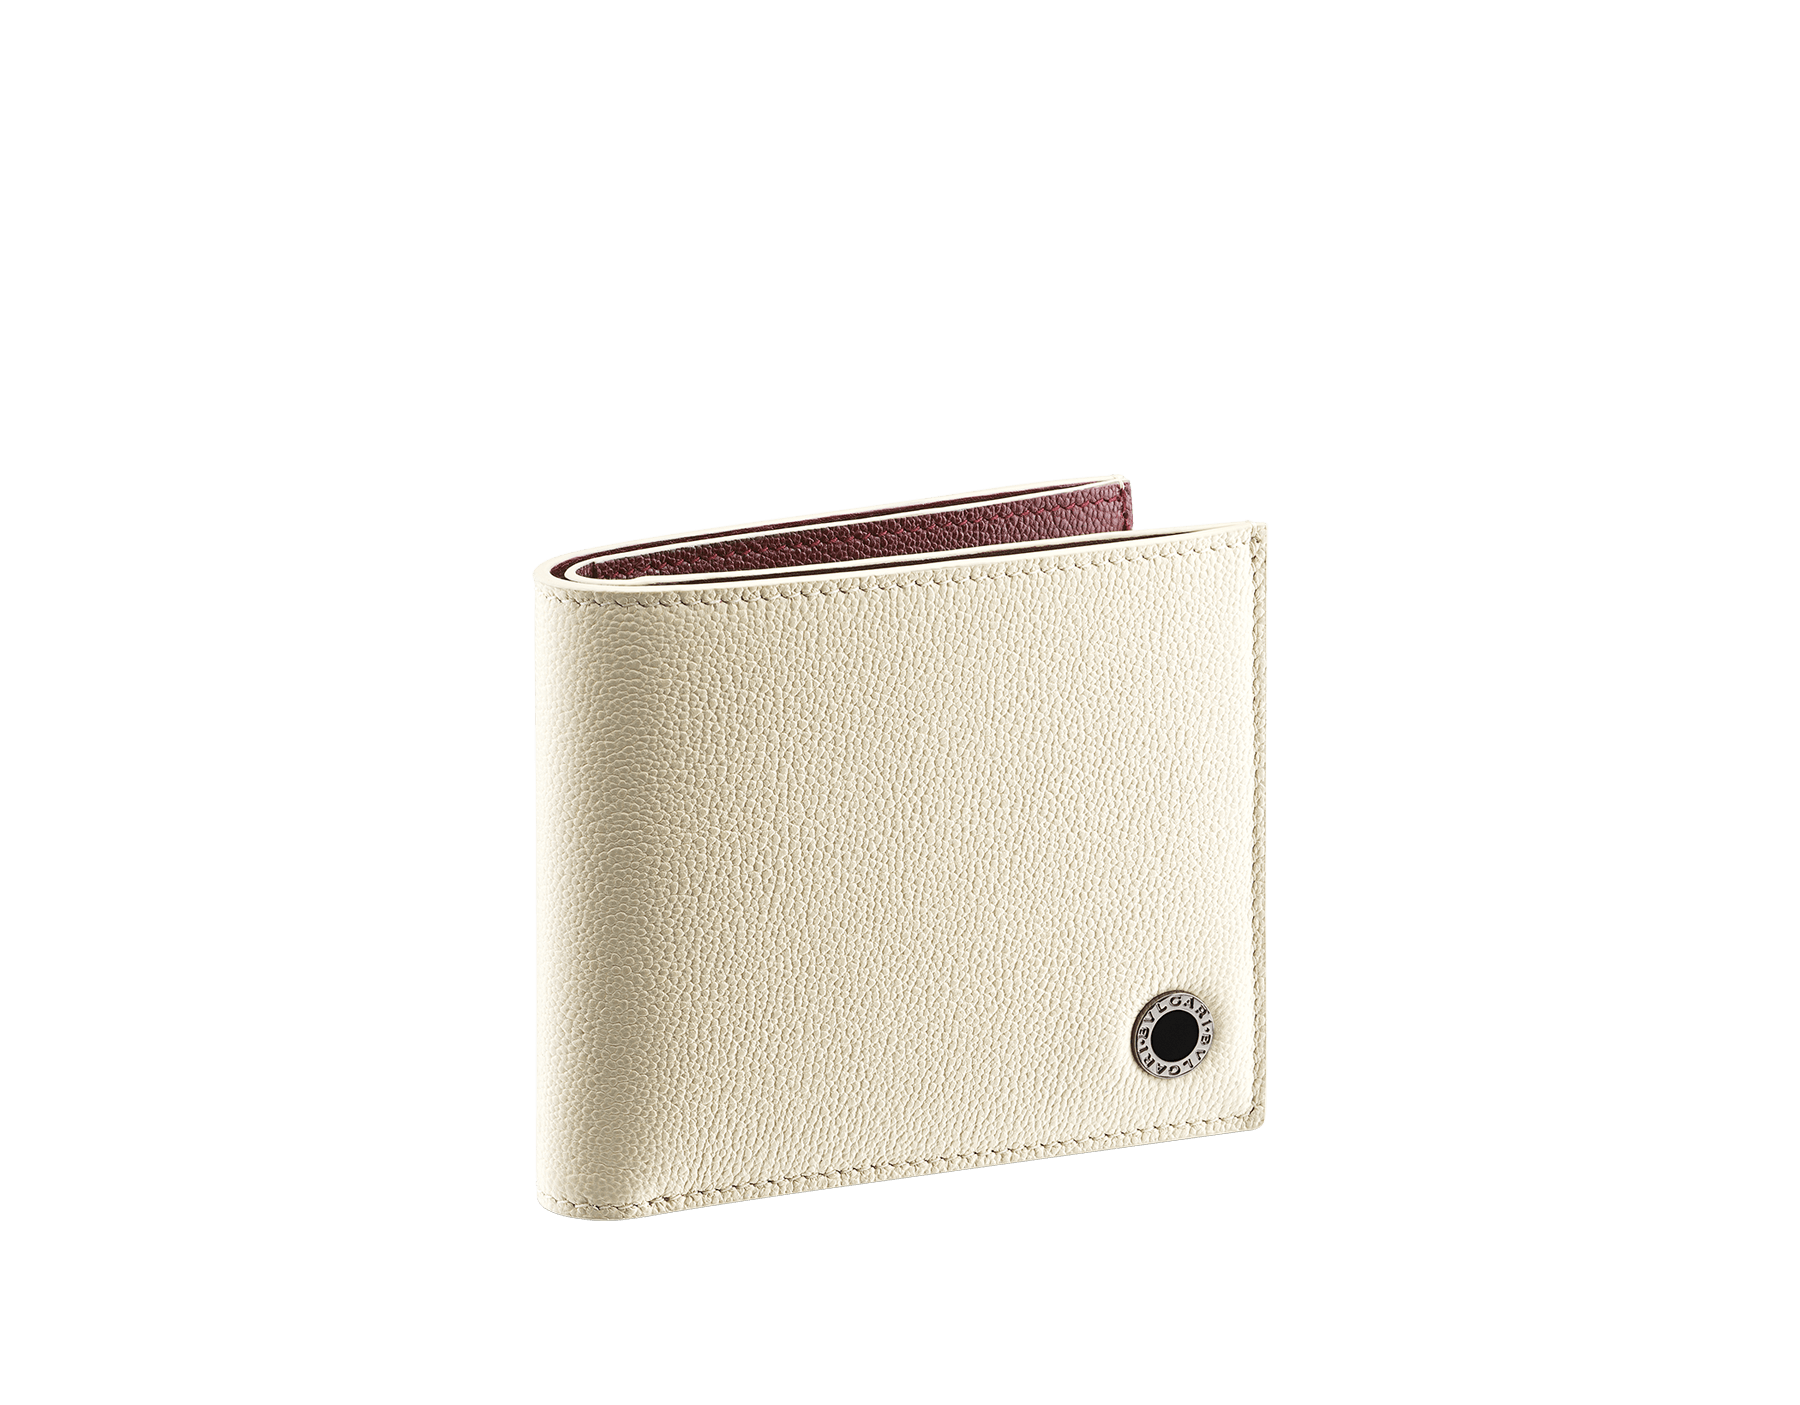 """""""BVLGARI BVLGARI"""" men's compact wallet in black and Forest Emerald green """"Urban"""" grain calf leather. Iconic logo embellishment in dark ruthenium-plated brass with black enamelling. BBM-WLT2FASYM image 1"""